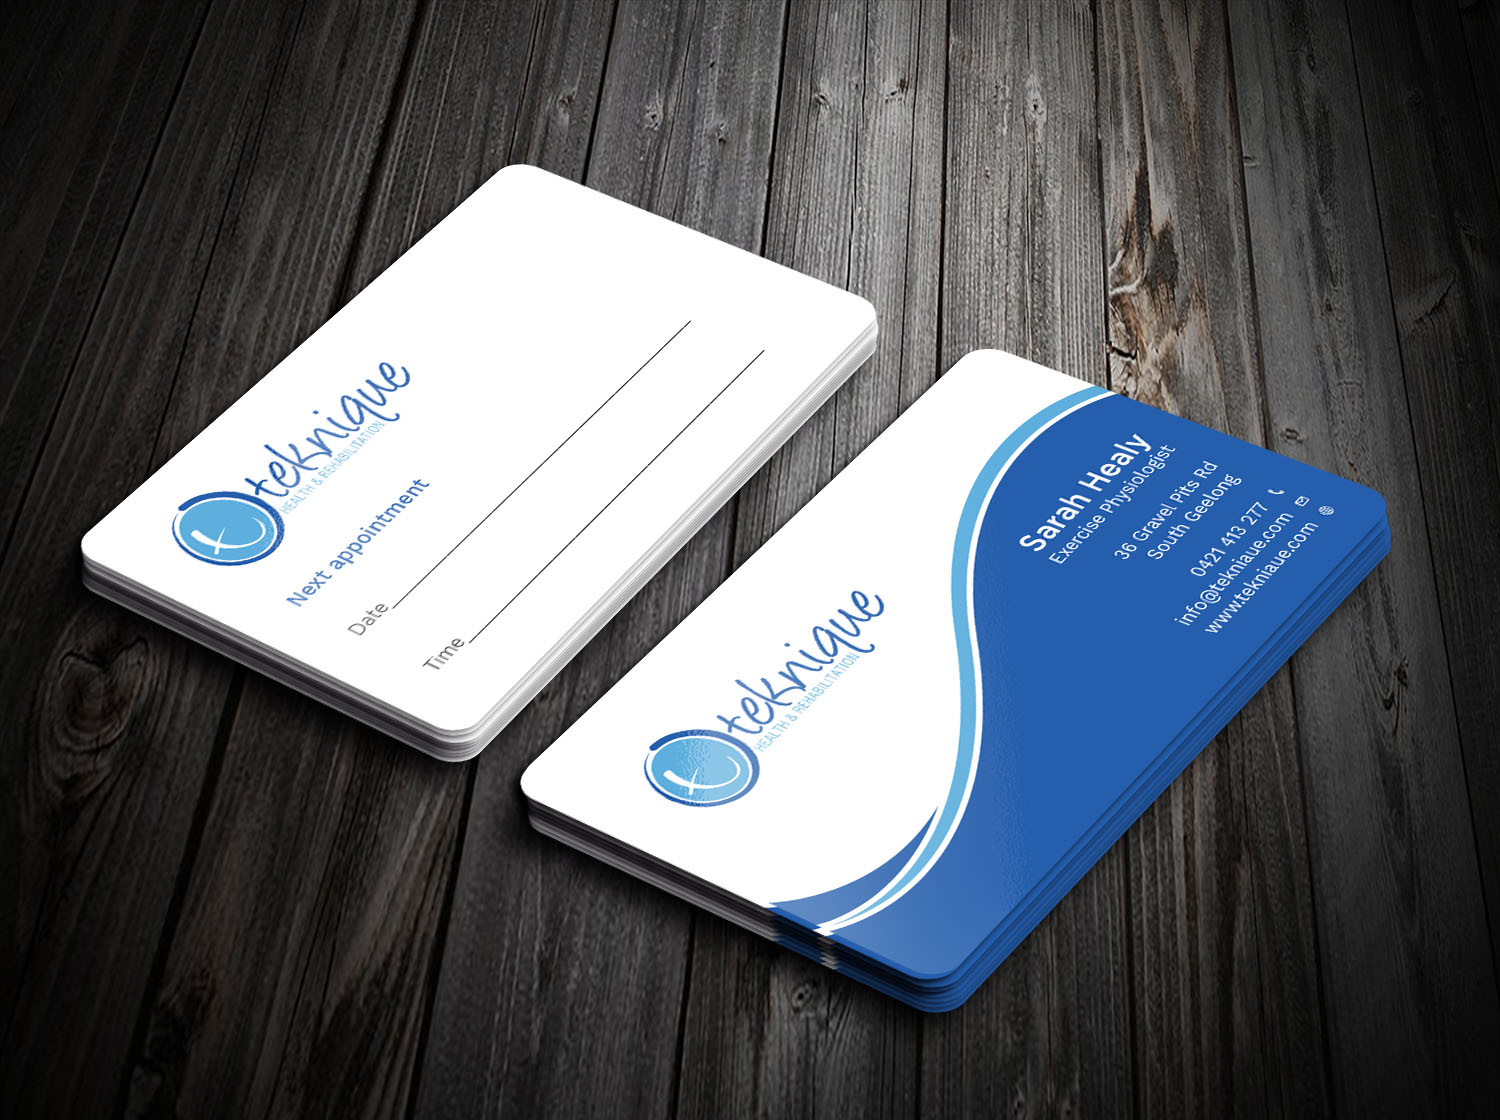 Modern bold health and wellness business card design for teknique business card design by avanger000 for teknique health rehabilitation design 19007130 reheart Choice Image